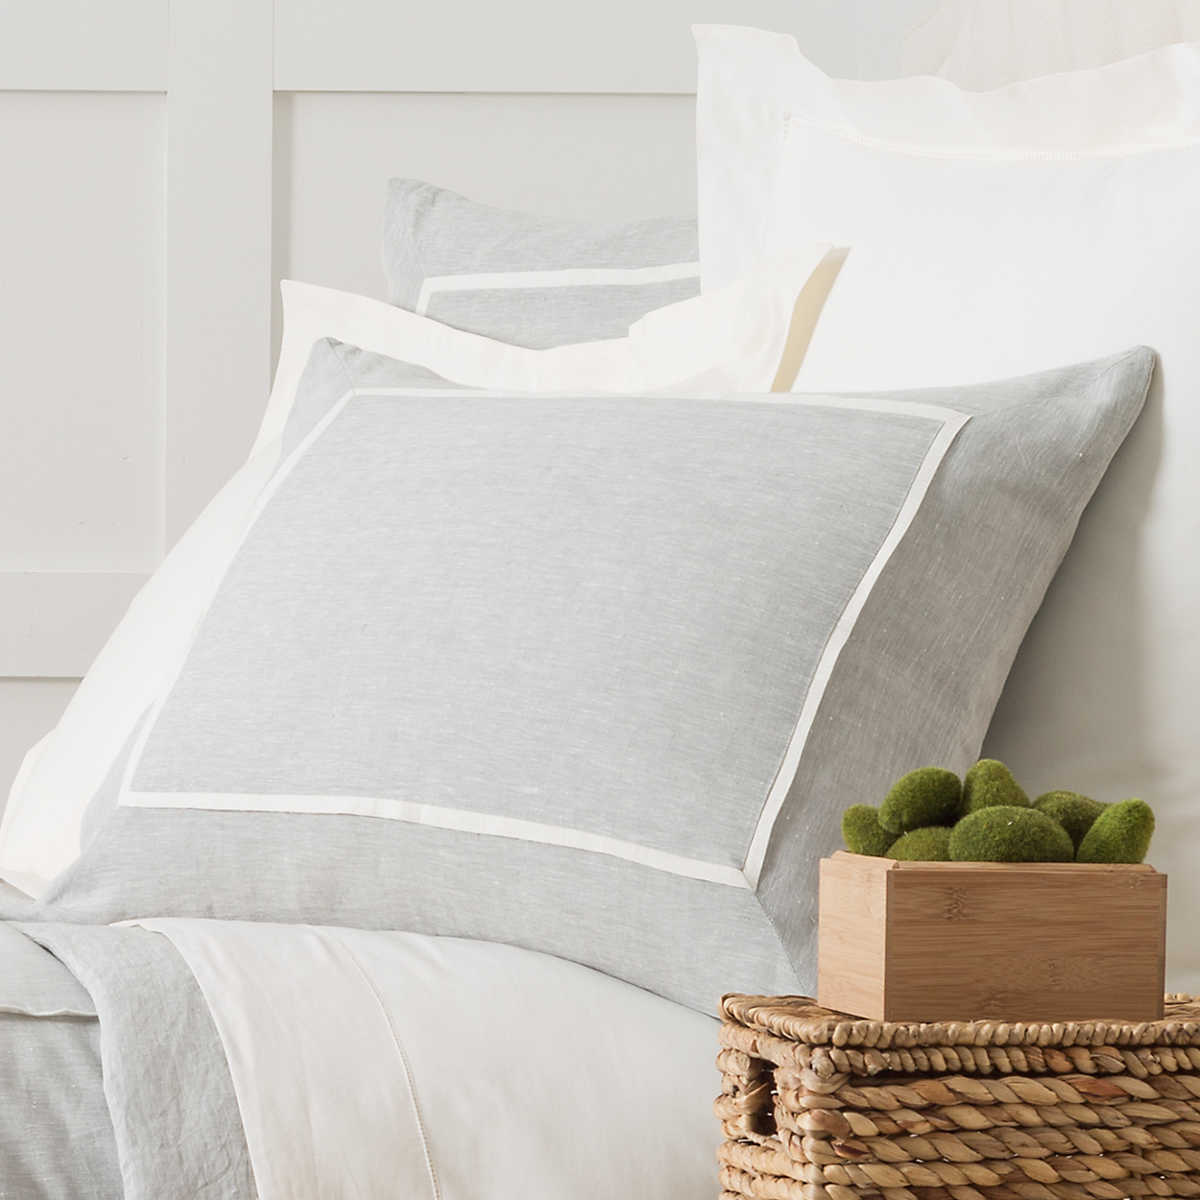 Juliet White Standard Sham by Pine Cone Hill. $ Usually ships in business daysThe Juliet White Collection from Pine Cone Hill is a beautiful white embriodered kids bedding set that will add cottage charm to your child's room.